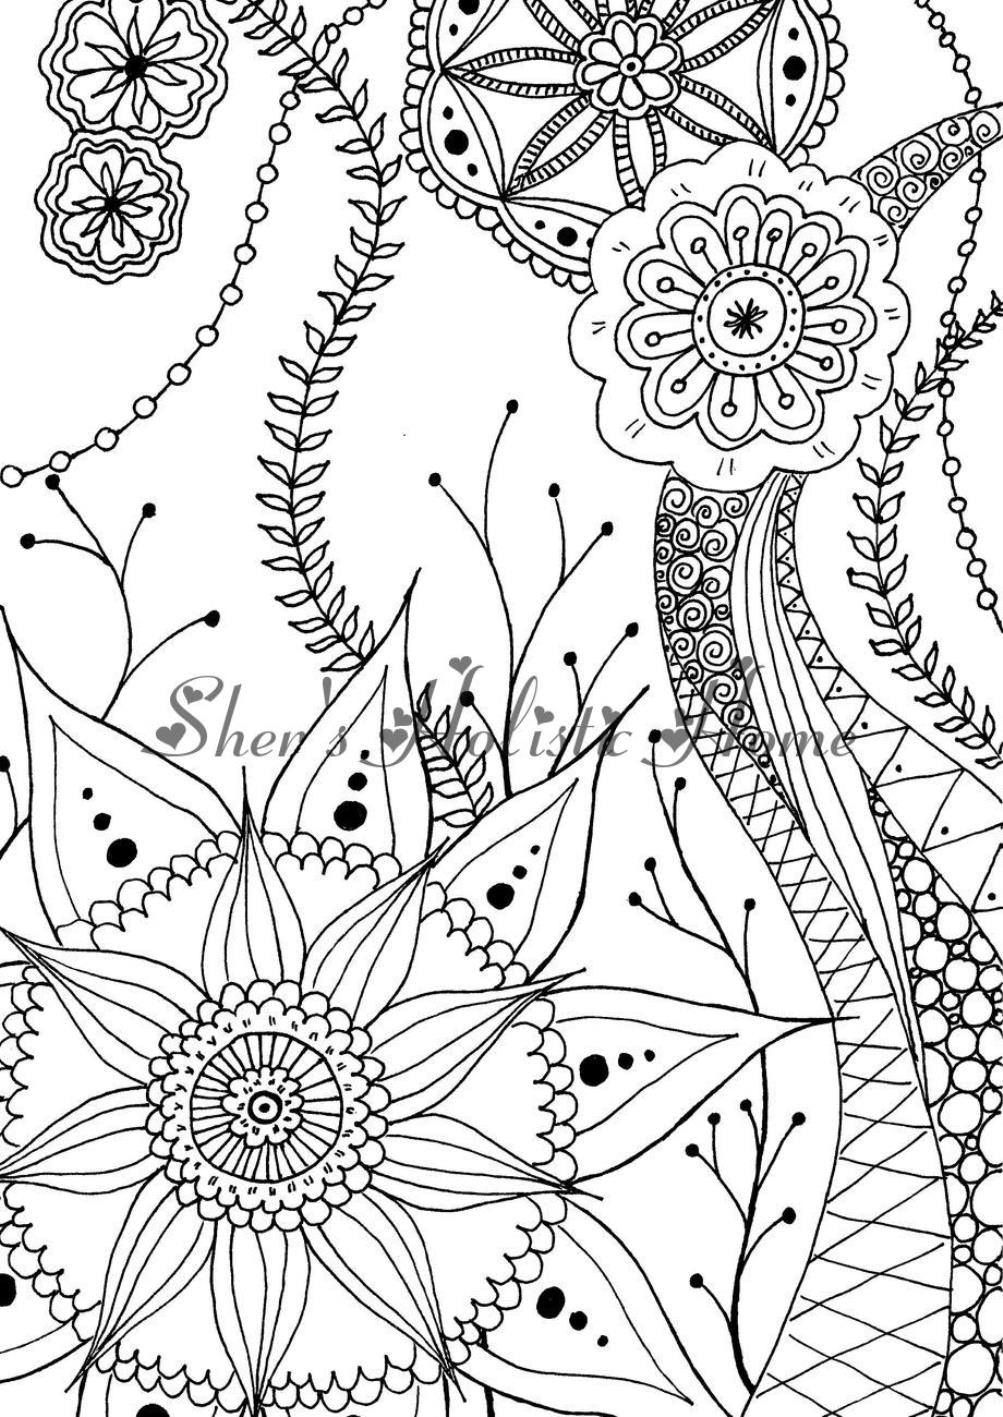 Mandala Coloring Page Kids Coloring Page Flower Coloring Etsy Abstract Coloring Pages Geometric Coloring Pages Mandala Coloring Pages